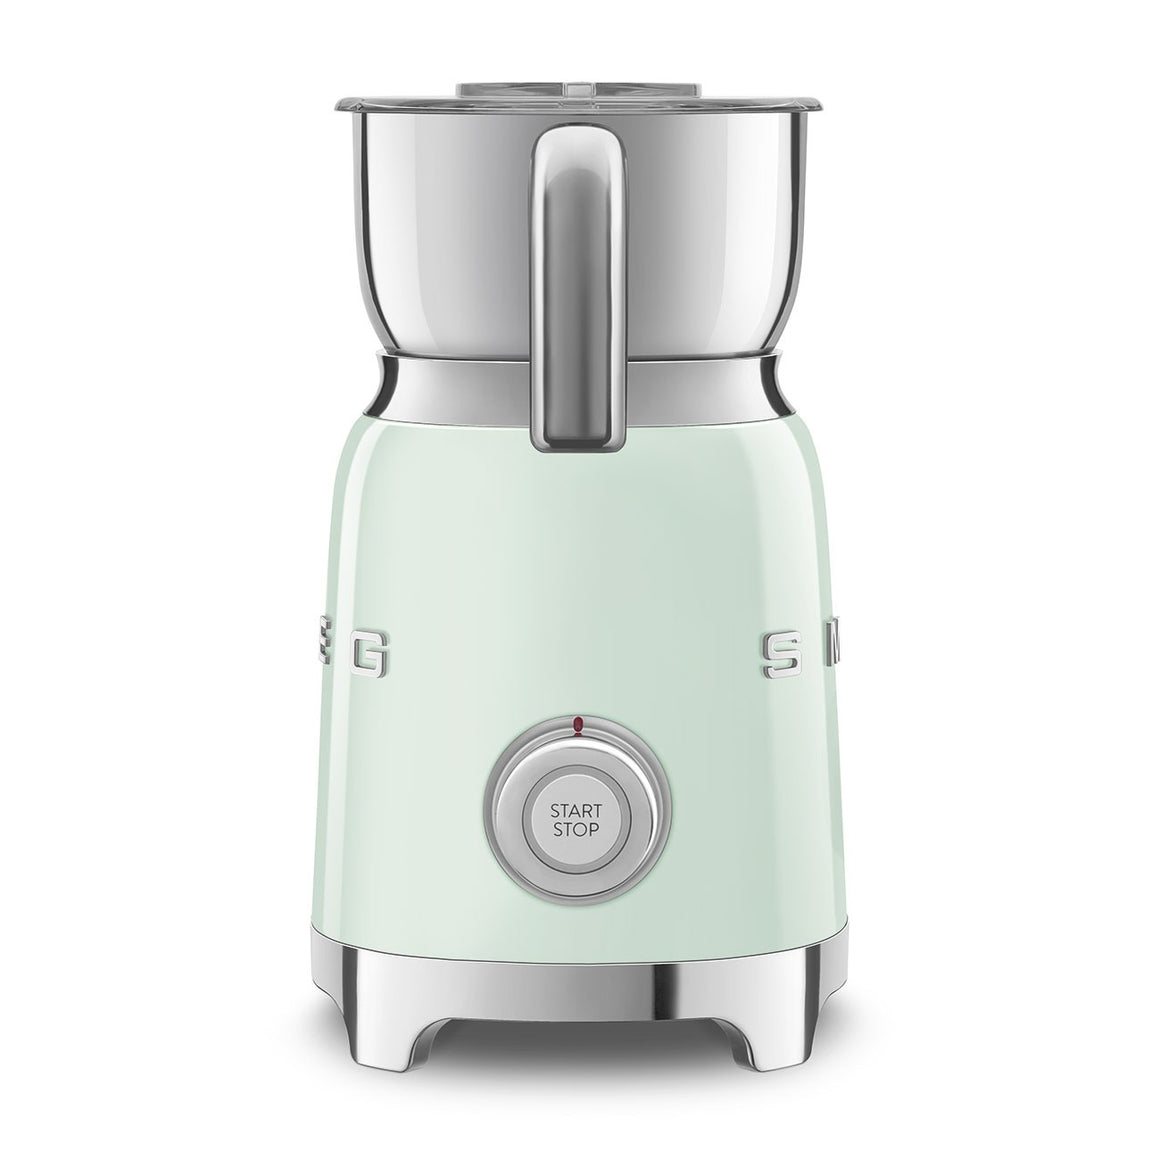 SMEG - 50's Milk Frother, Pastel Green